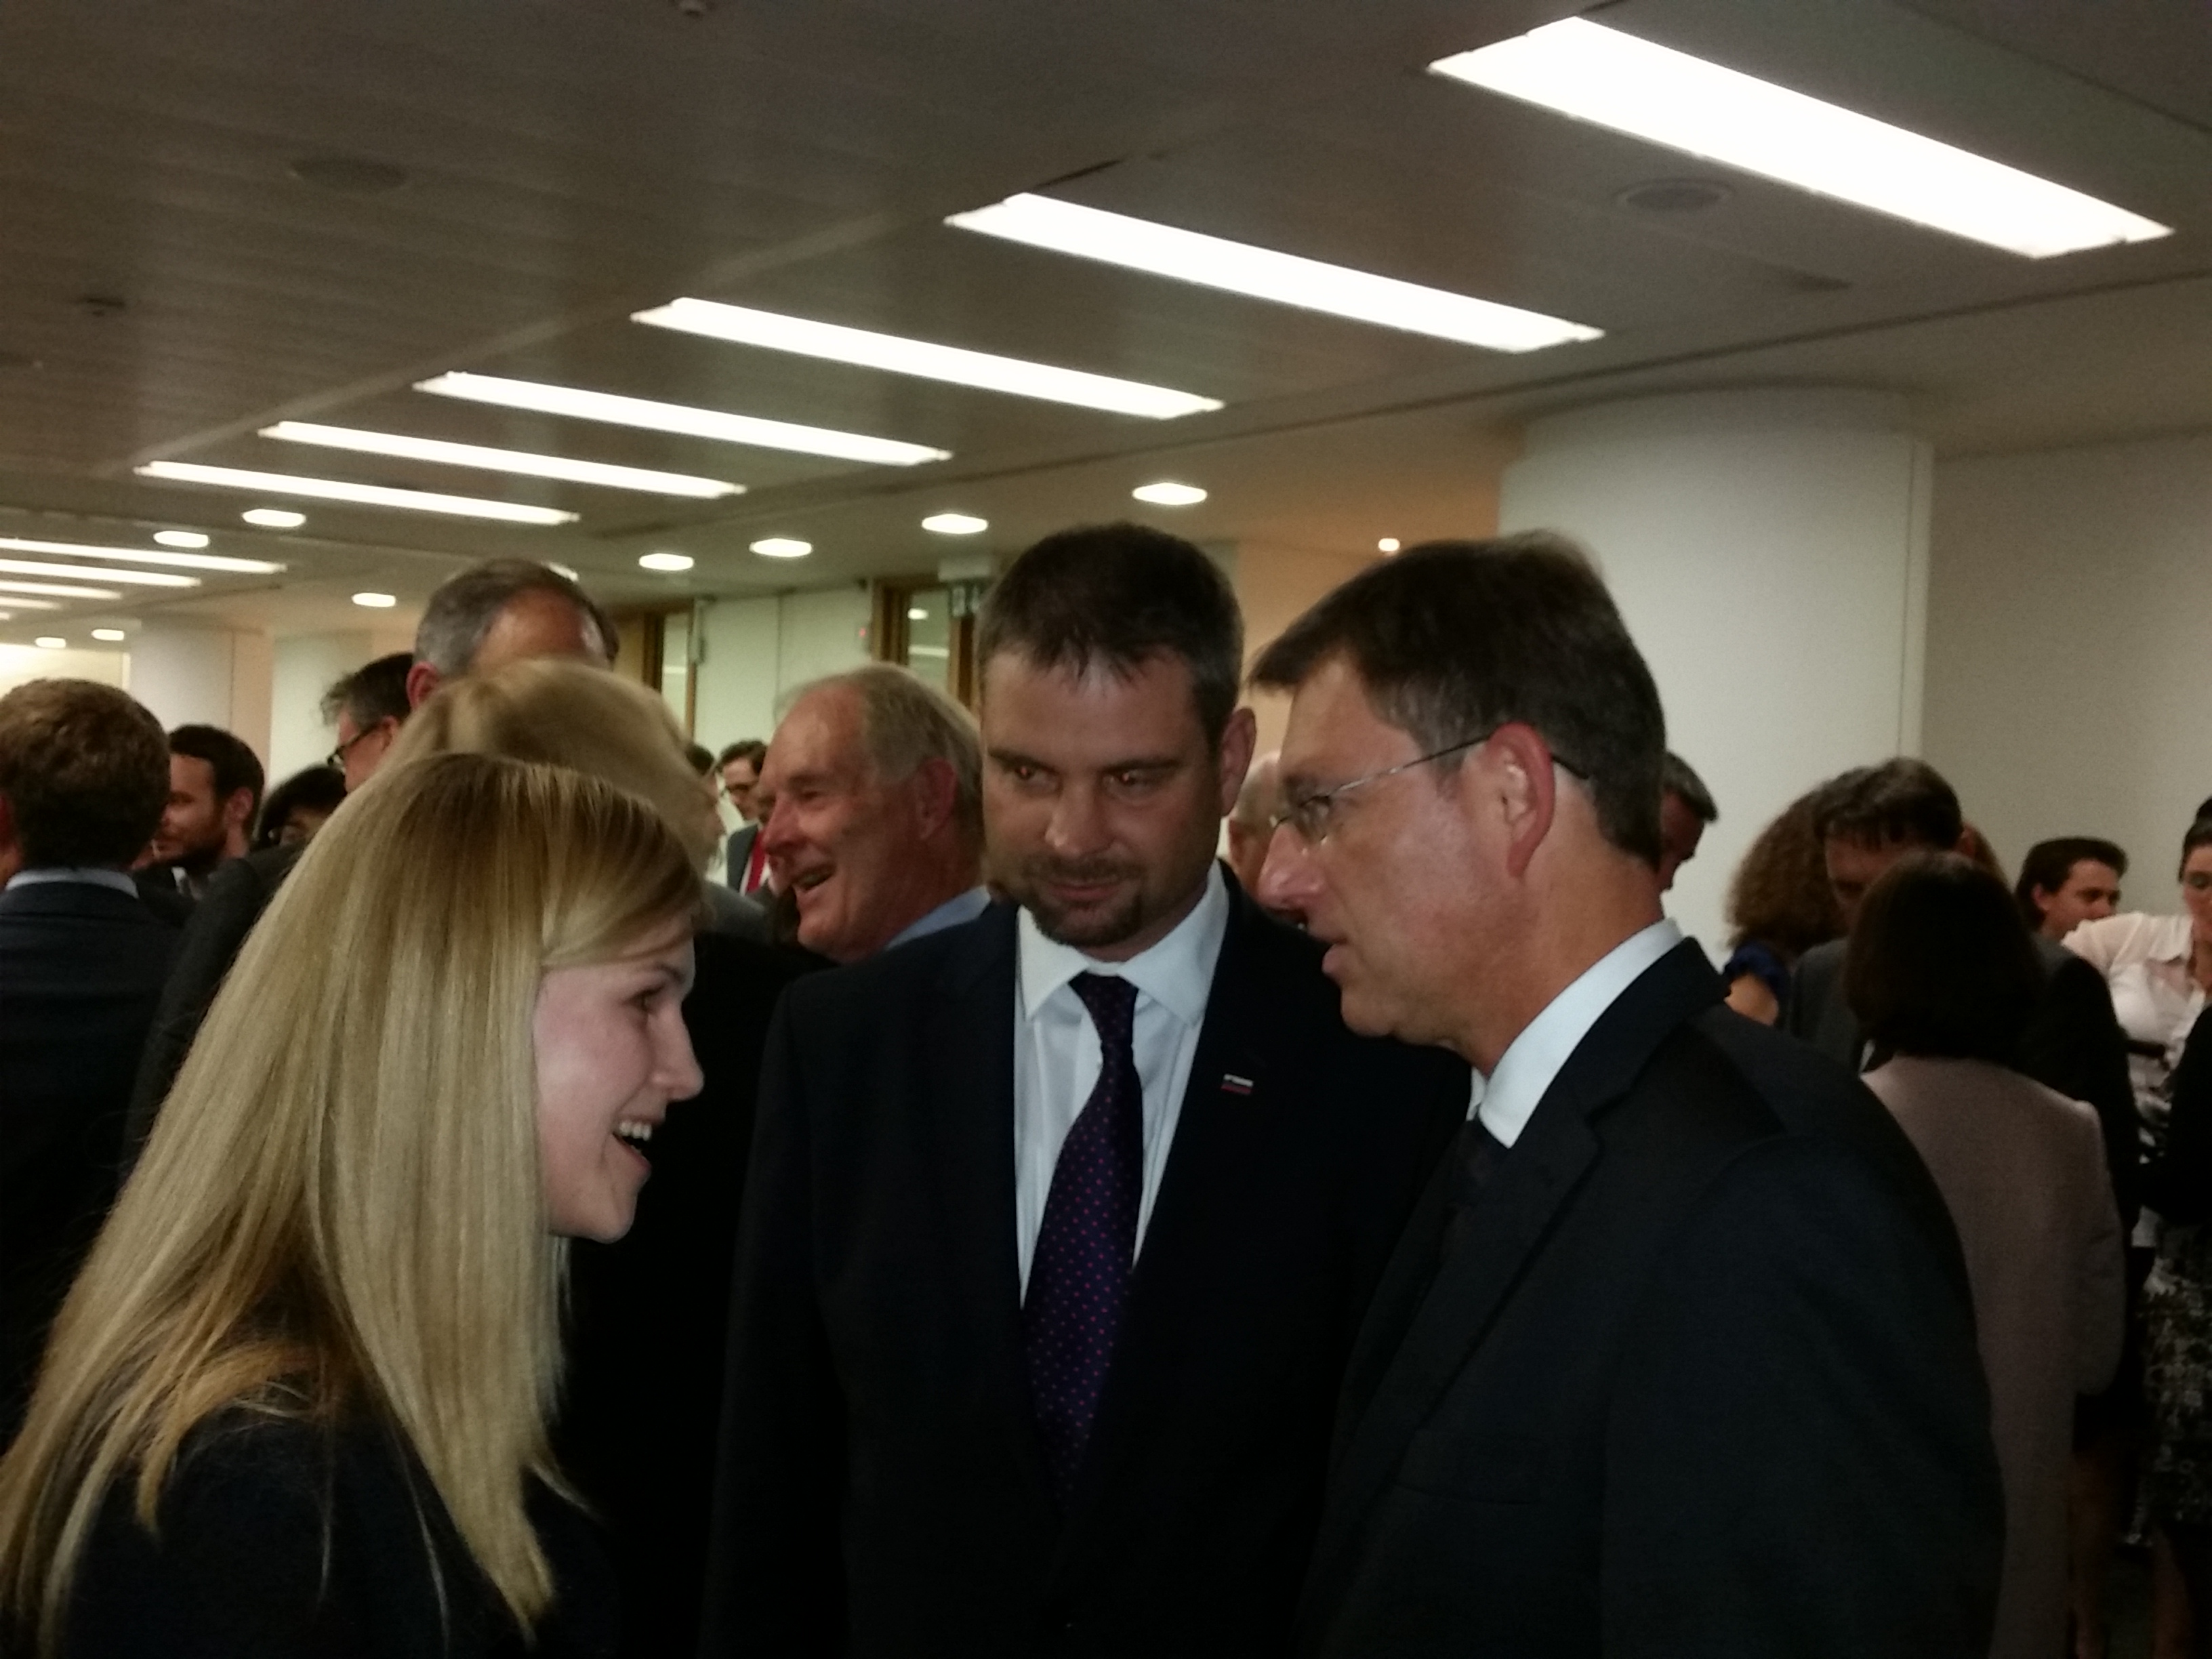 Slovenian Prime Minister Miro Cerar talks with Maja Rančigaj, teacher of Slovene at the University of Nottingham